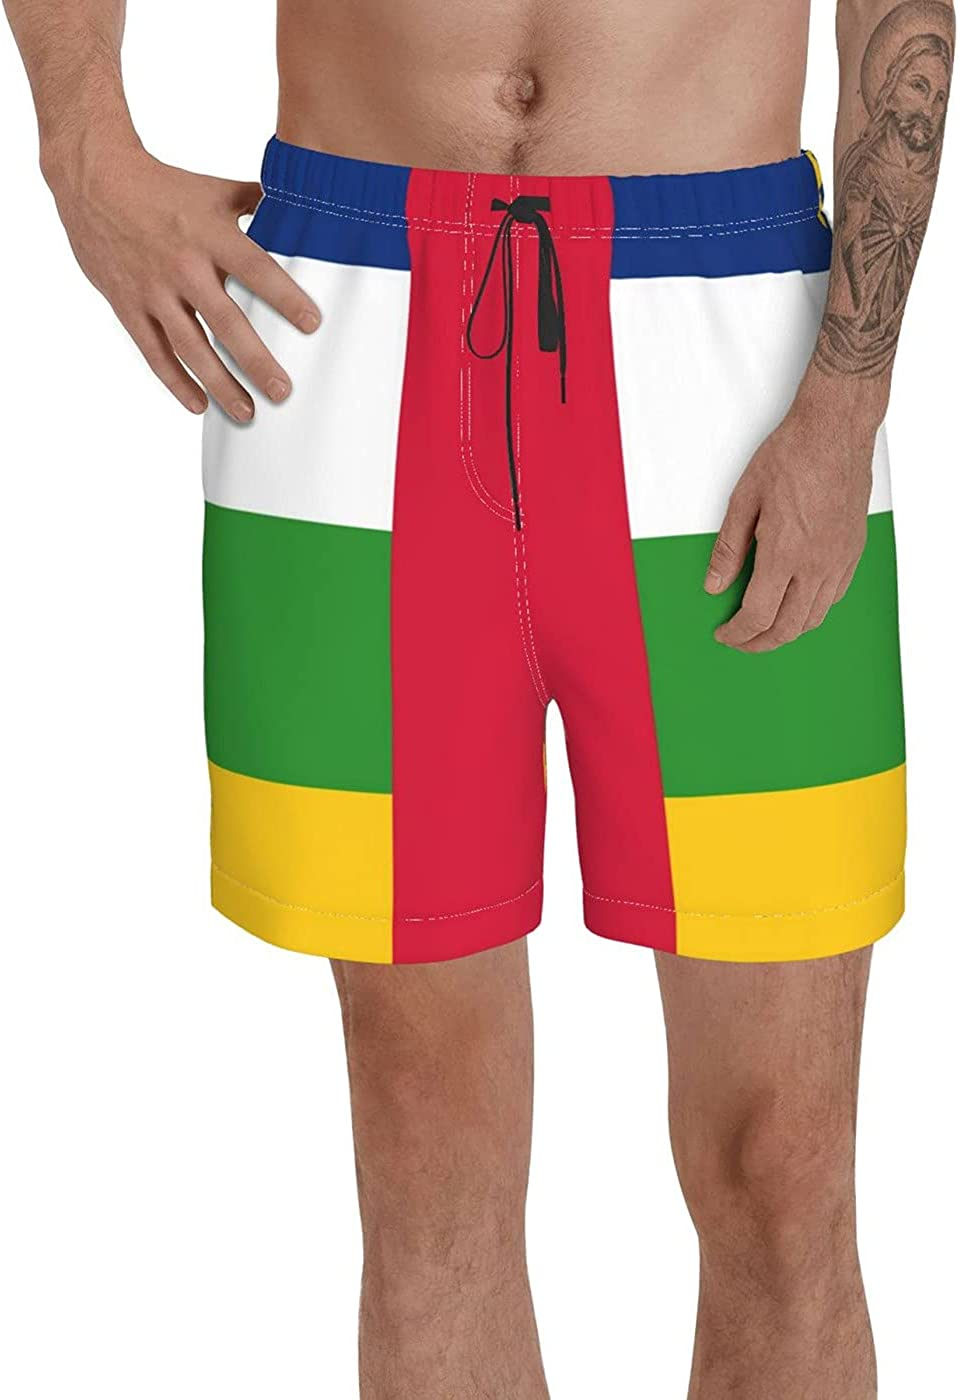 Count Central African Republic Flag Men's 3D Printed Funny Summer Quick Dry Swim Short Board Shorts with